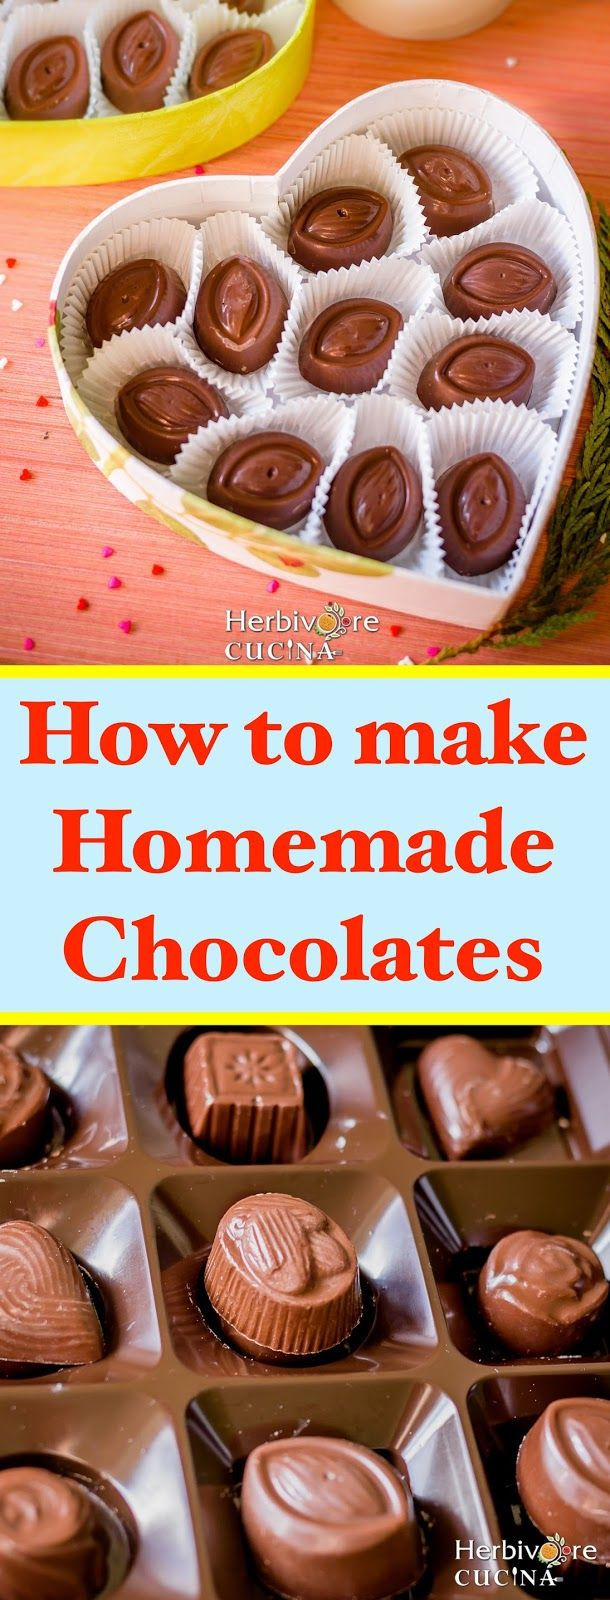 Herbivore Cucina: Homemade Chocolates...Rich, shiny and customizable DIY Chocolates. These chocolates are super delicious and better than the store bought ones! Edible gifts for the Hostess or for Valentine's Day! #chocolates #valentines #ediblegifts #DIY #homemadechocolates #sweets #gifts